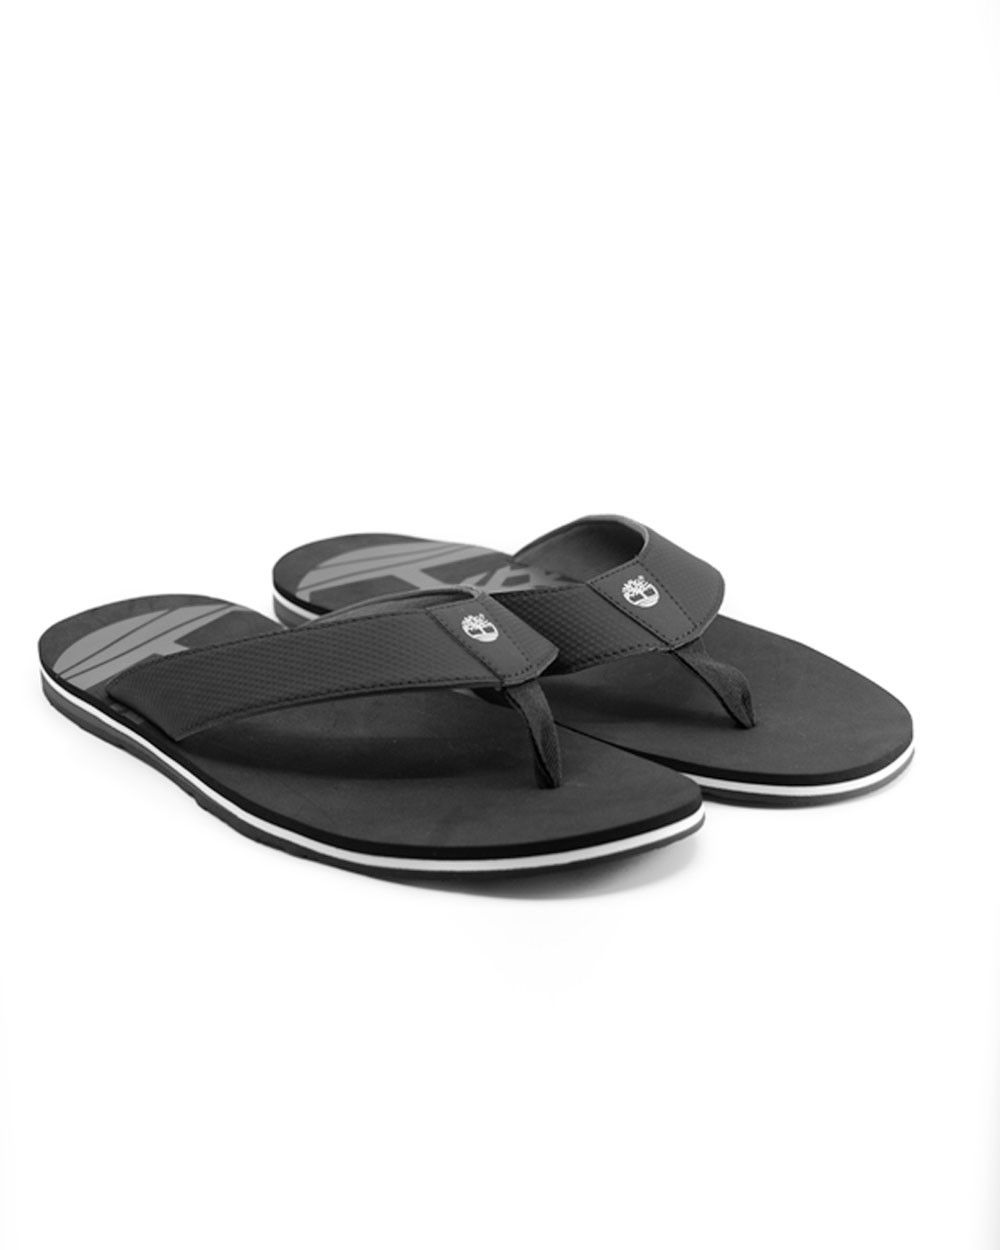 3aff9eb078e8 Timberland Wild Dunes Flip Flops (black synth). Mens Flip Flops Available  in Size 13-15.  BigFeet  Size13  Size14  Size15  FlipFlops